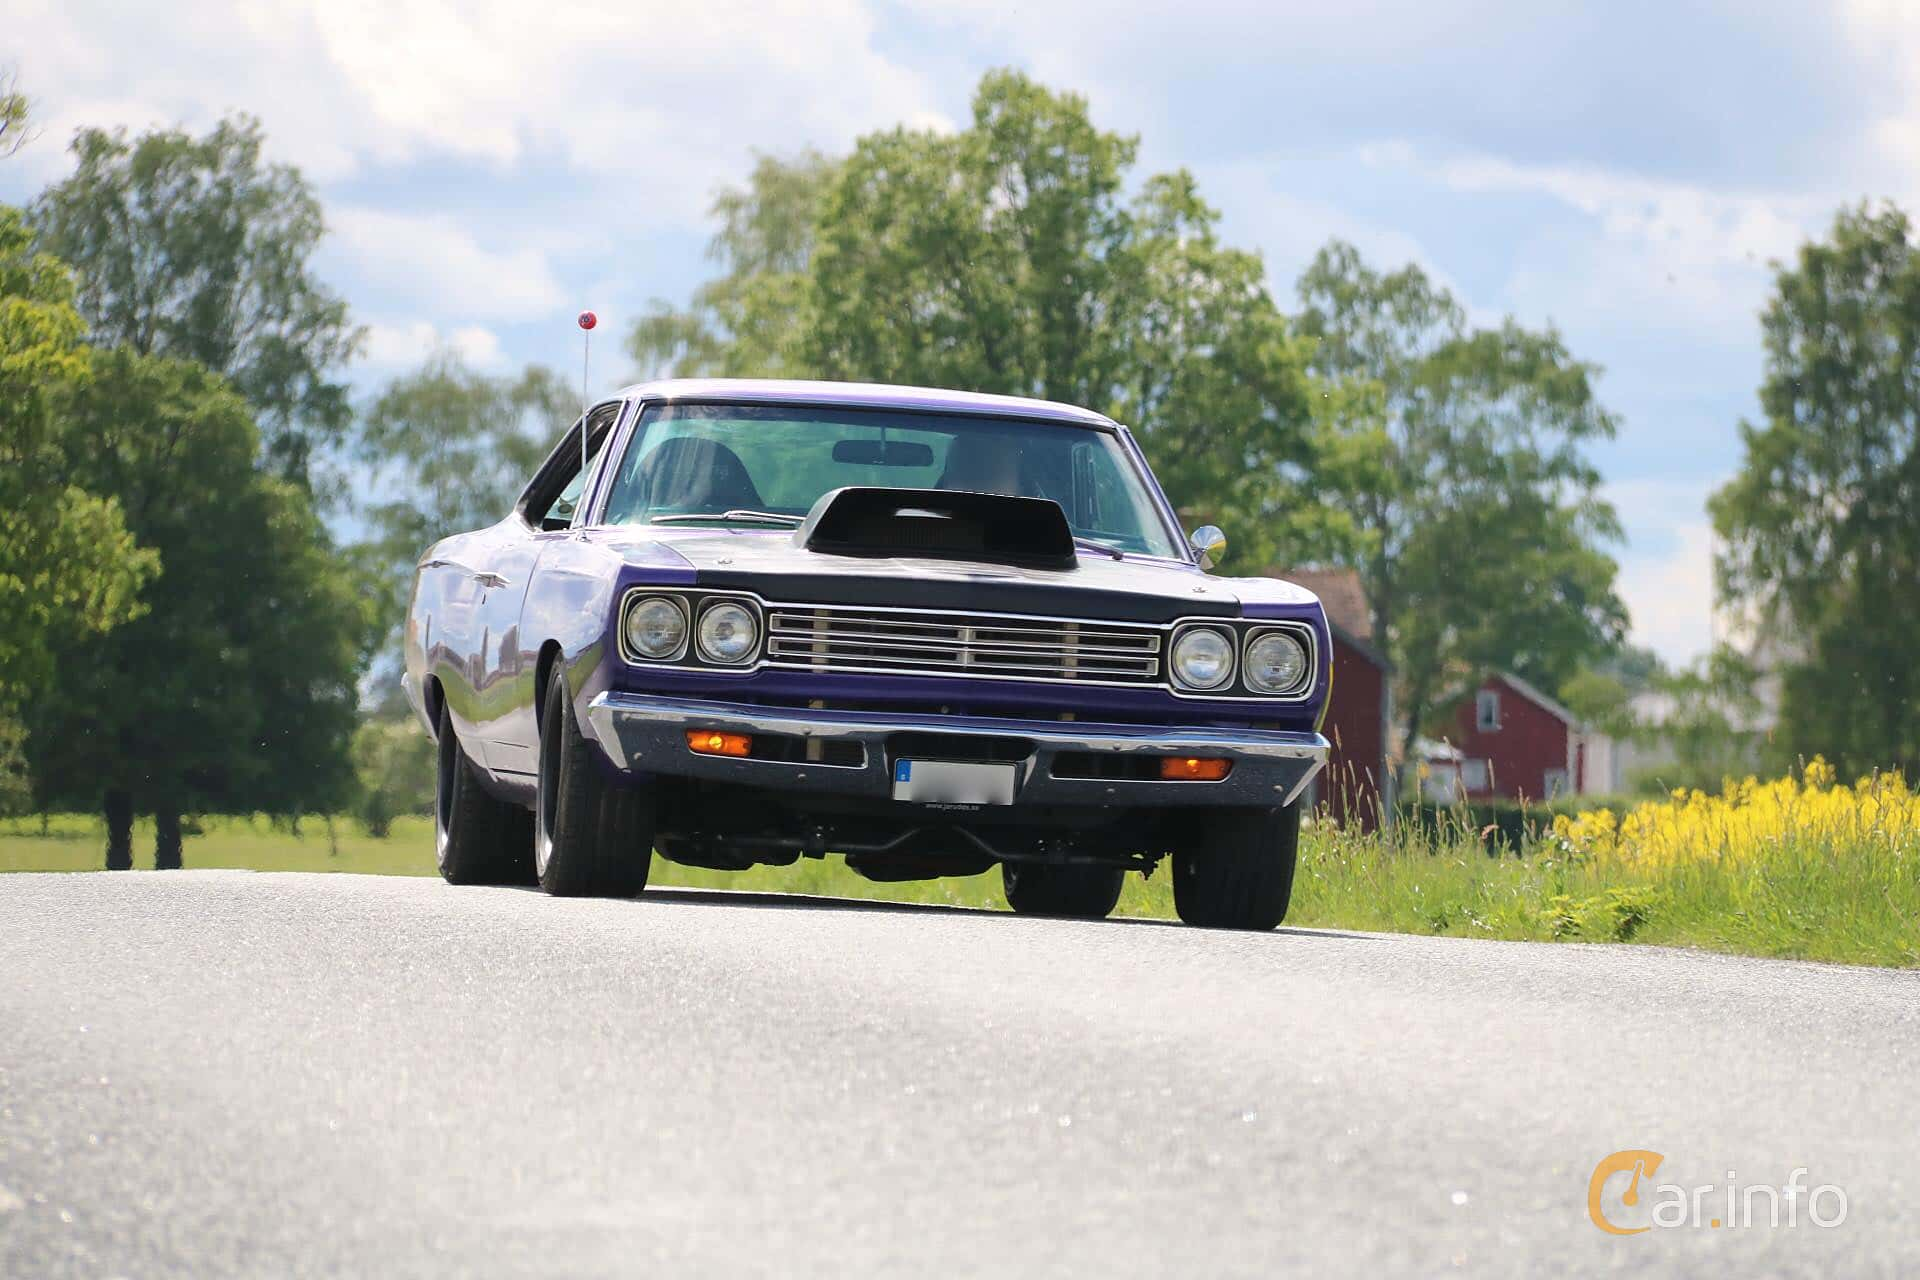 Plymouth Satellite Hardtop 5.2 V8 TorqueFlite, 233hp, 1969